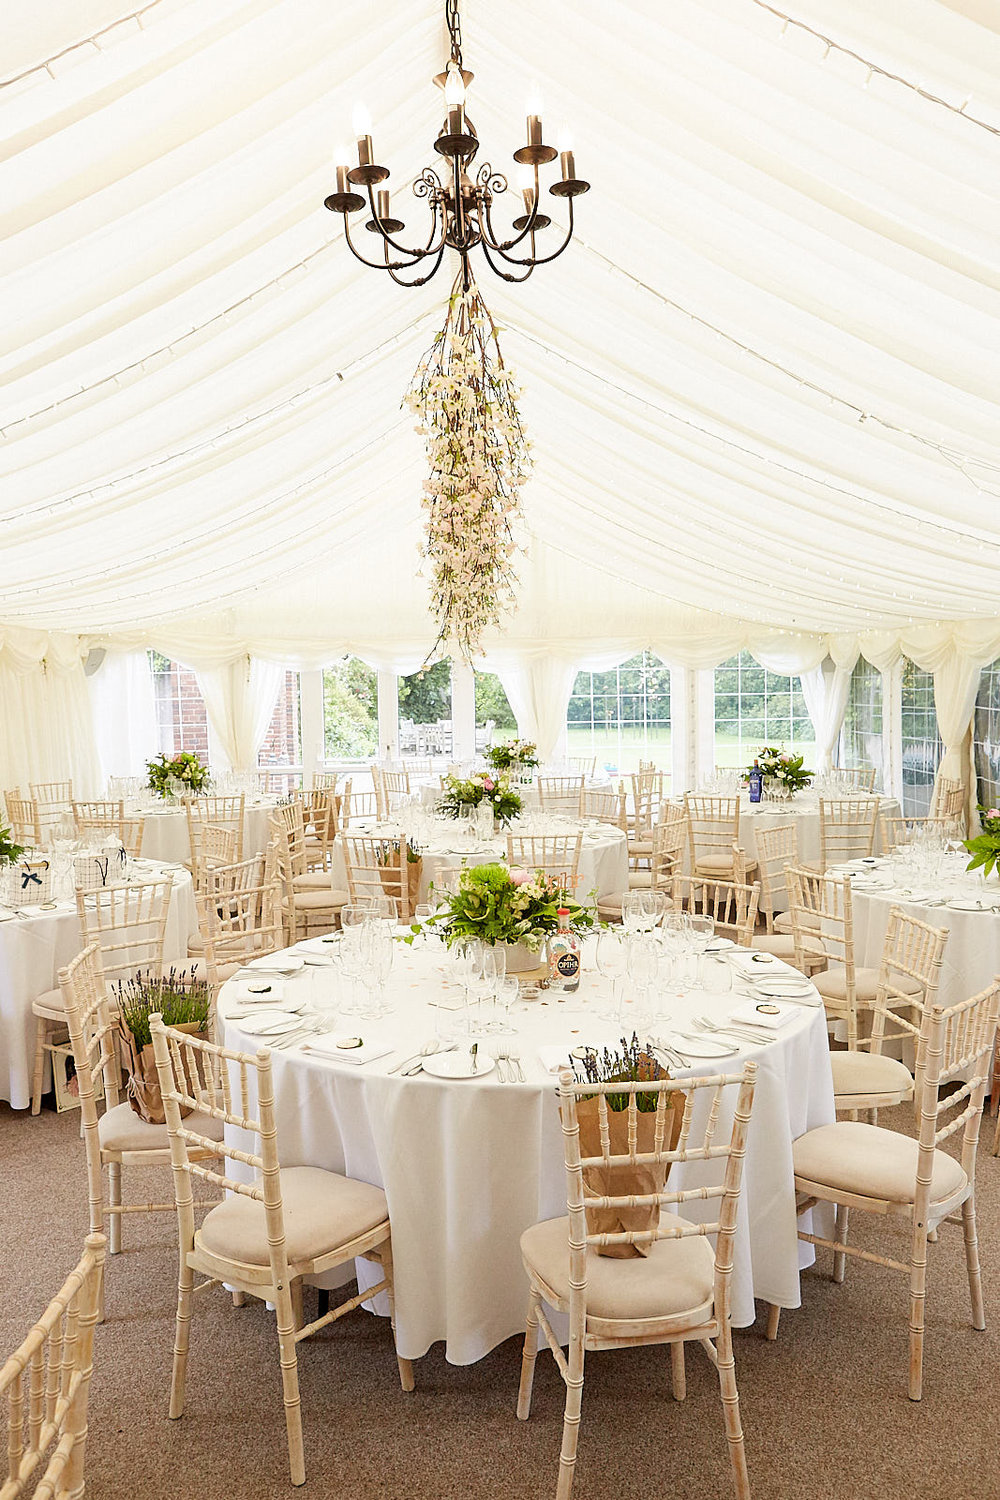 wedding venue inspiration